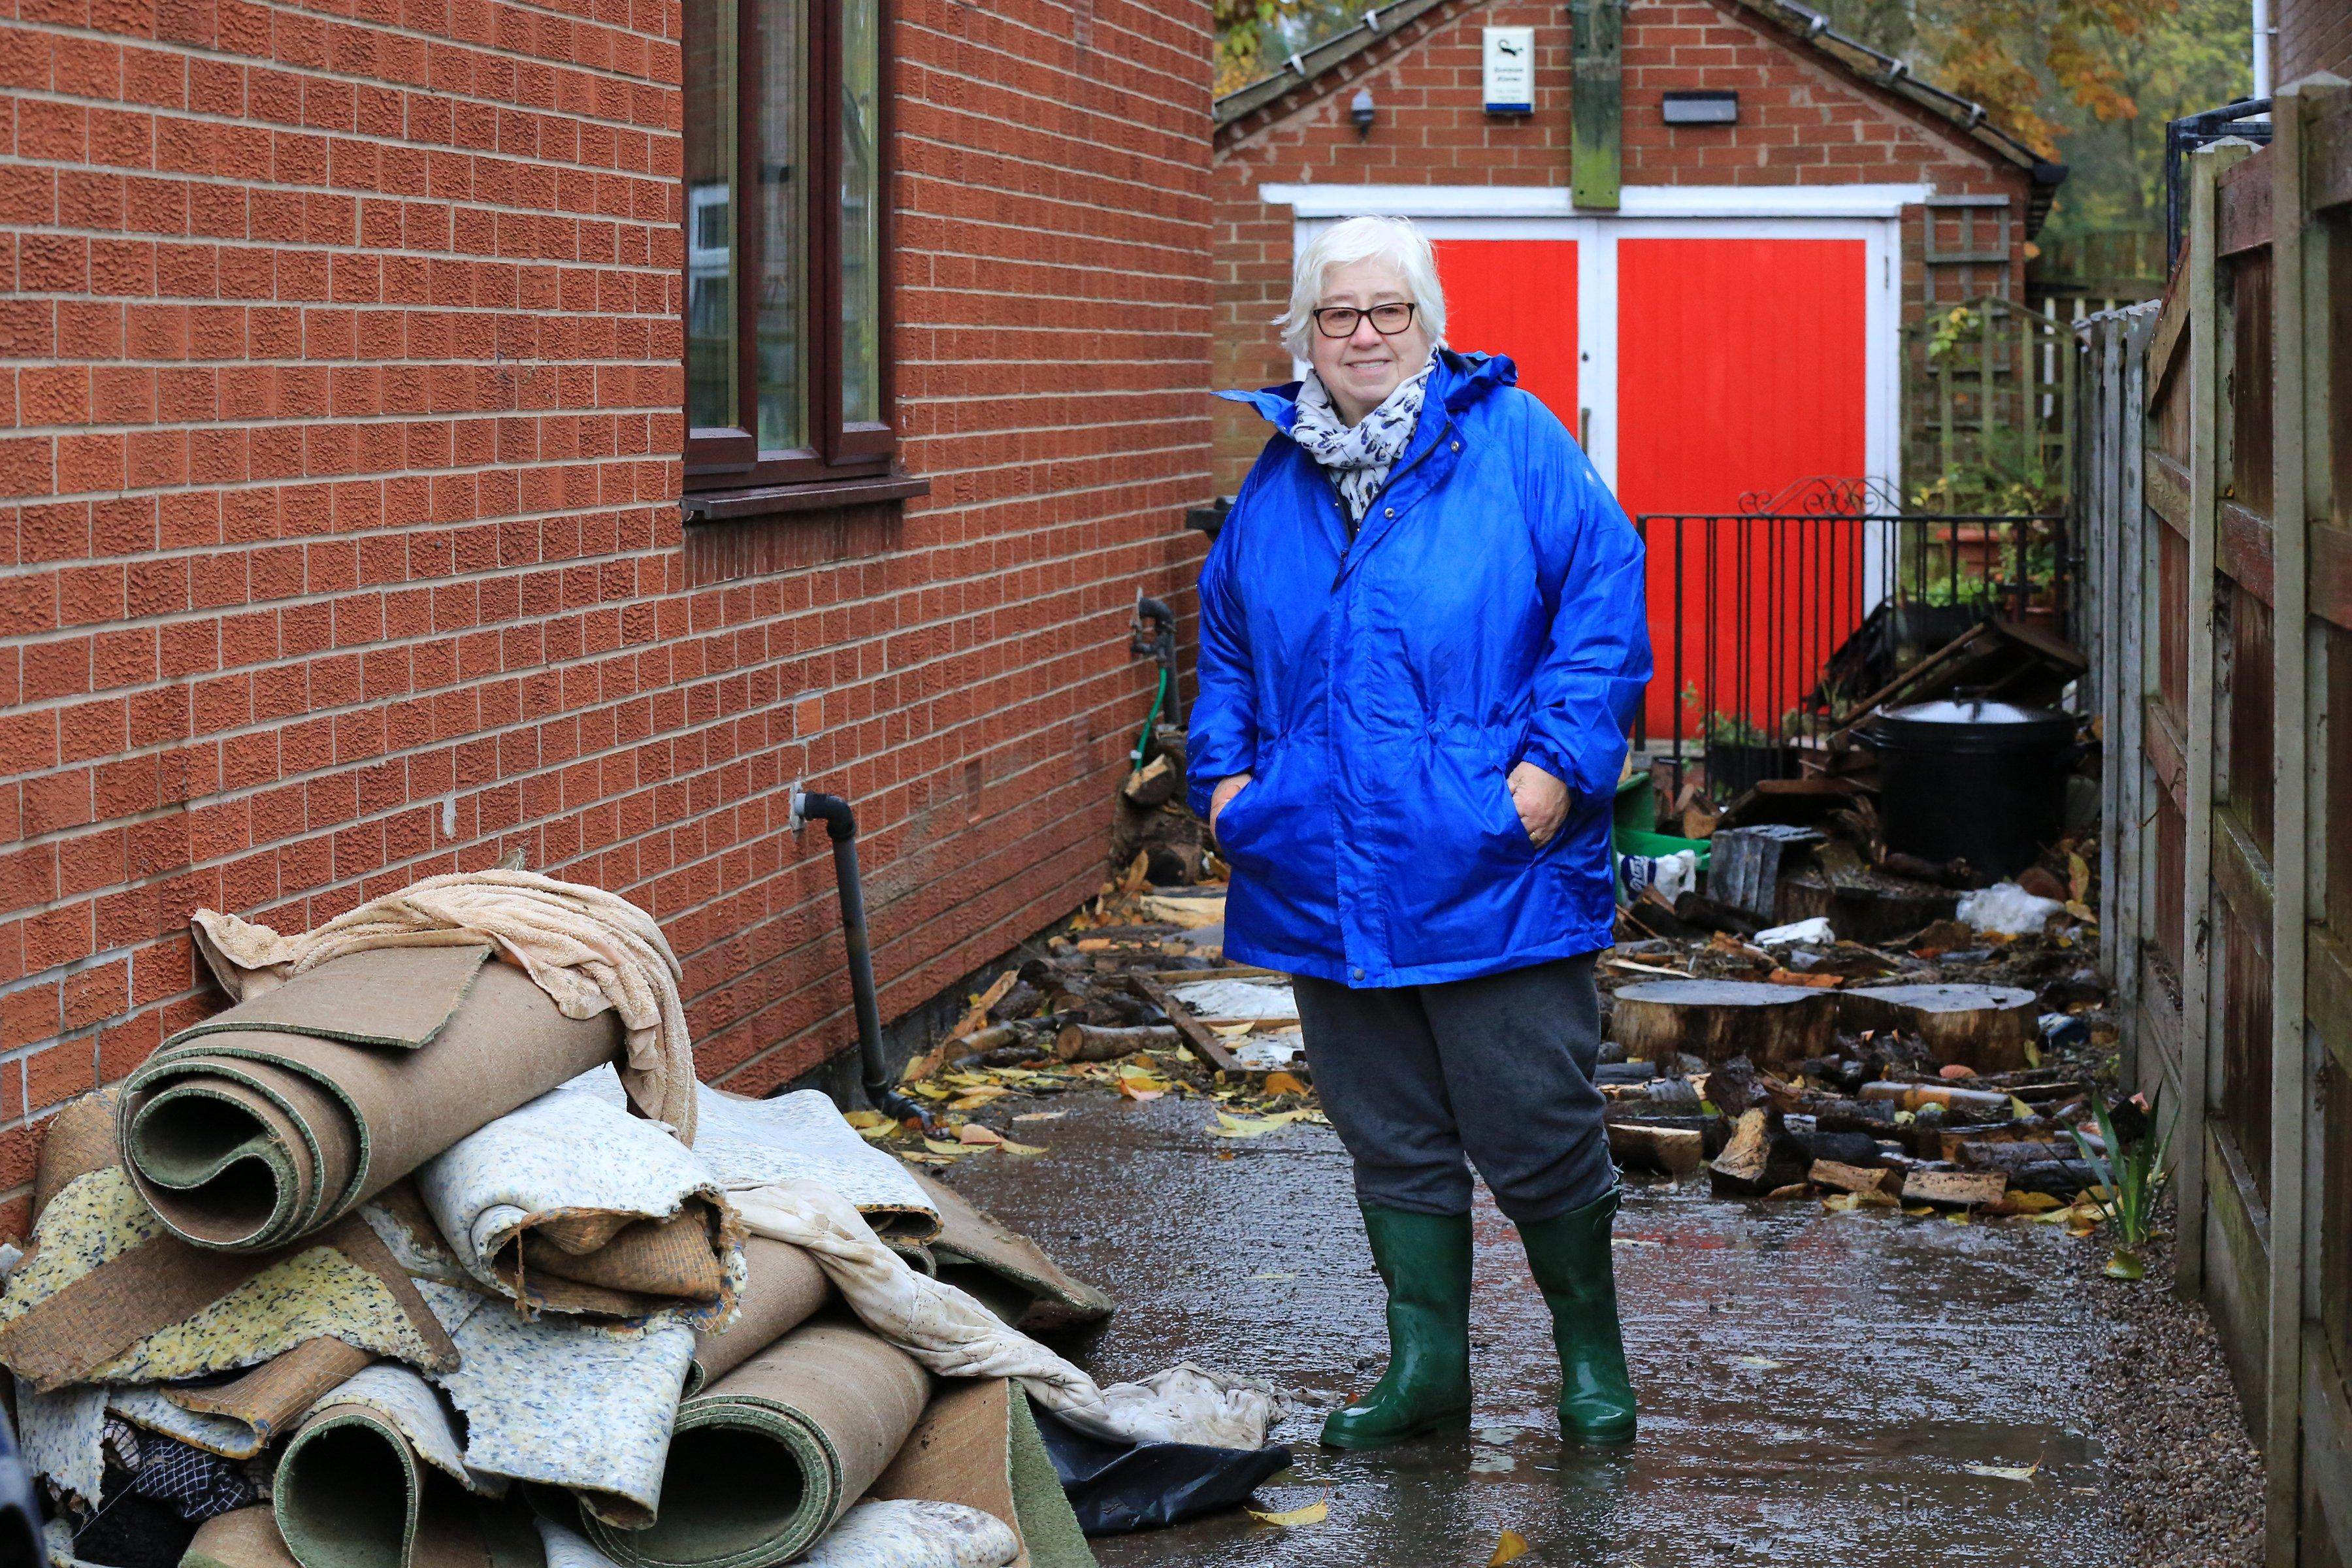 'We could be homeless for eight months' - major disaster teams hit Doncaster village - Doncaster Free Press